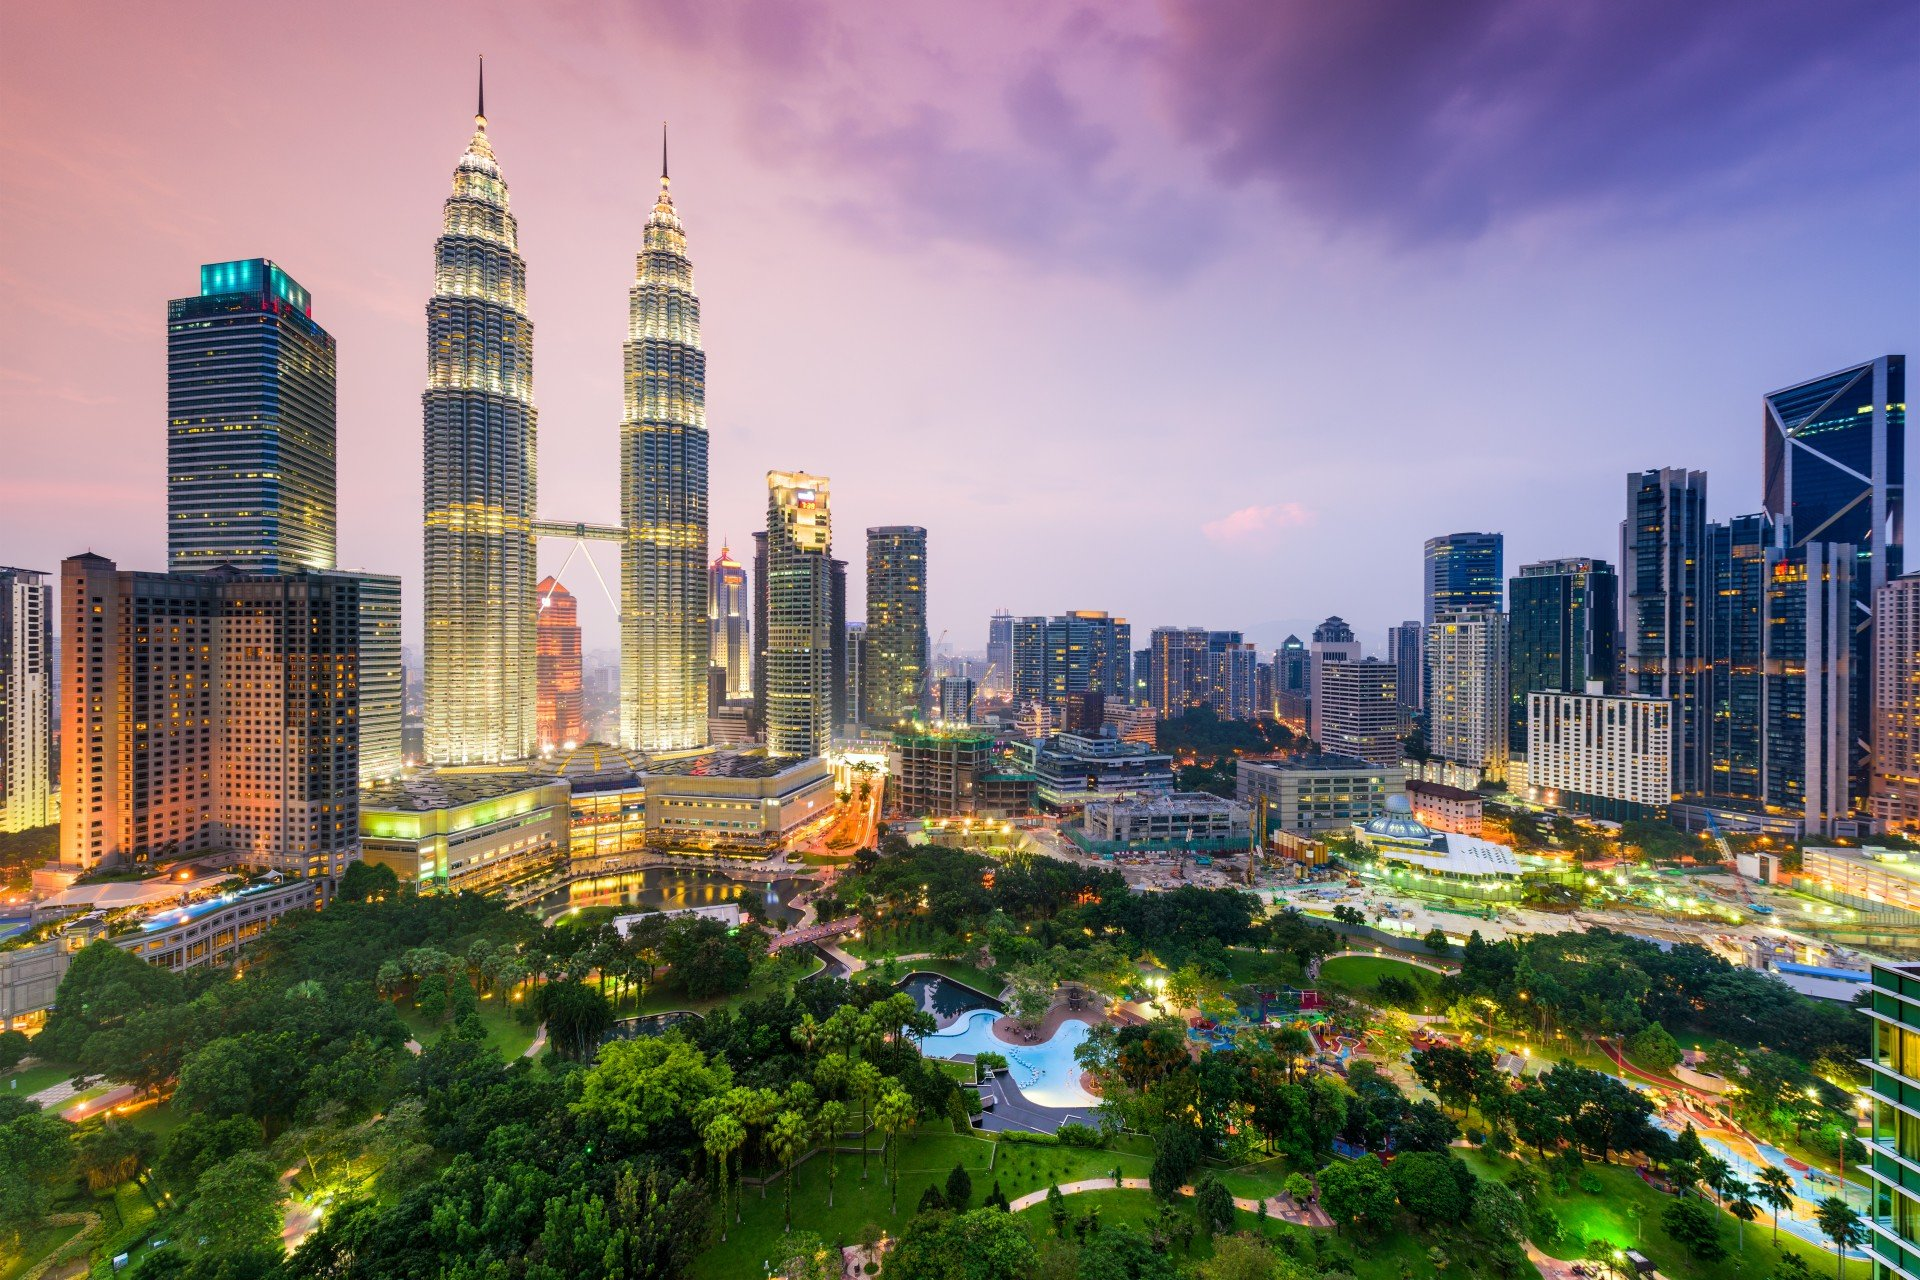 Shahril Ridza joined Khazanah in August 2018. He was previously chief executive officer of the Employees Provident Fund, Malaysia's largest pension fund